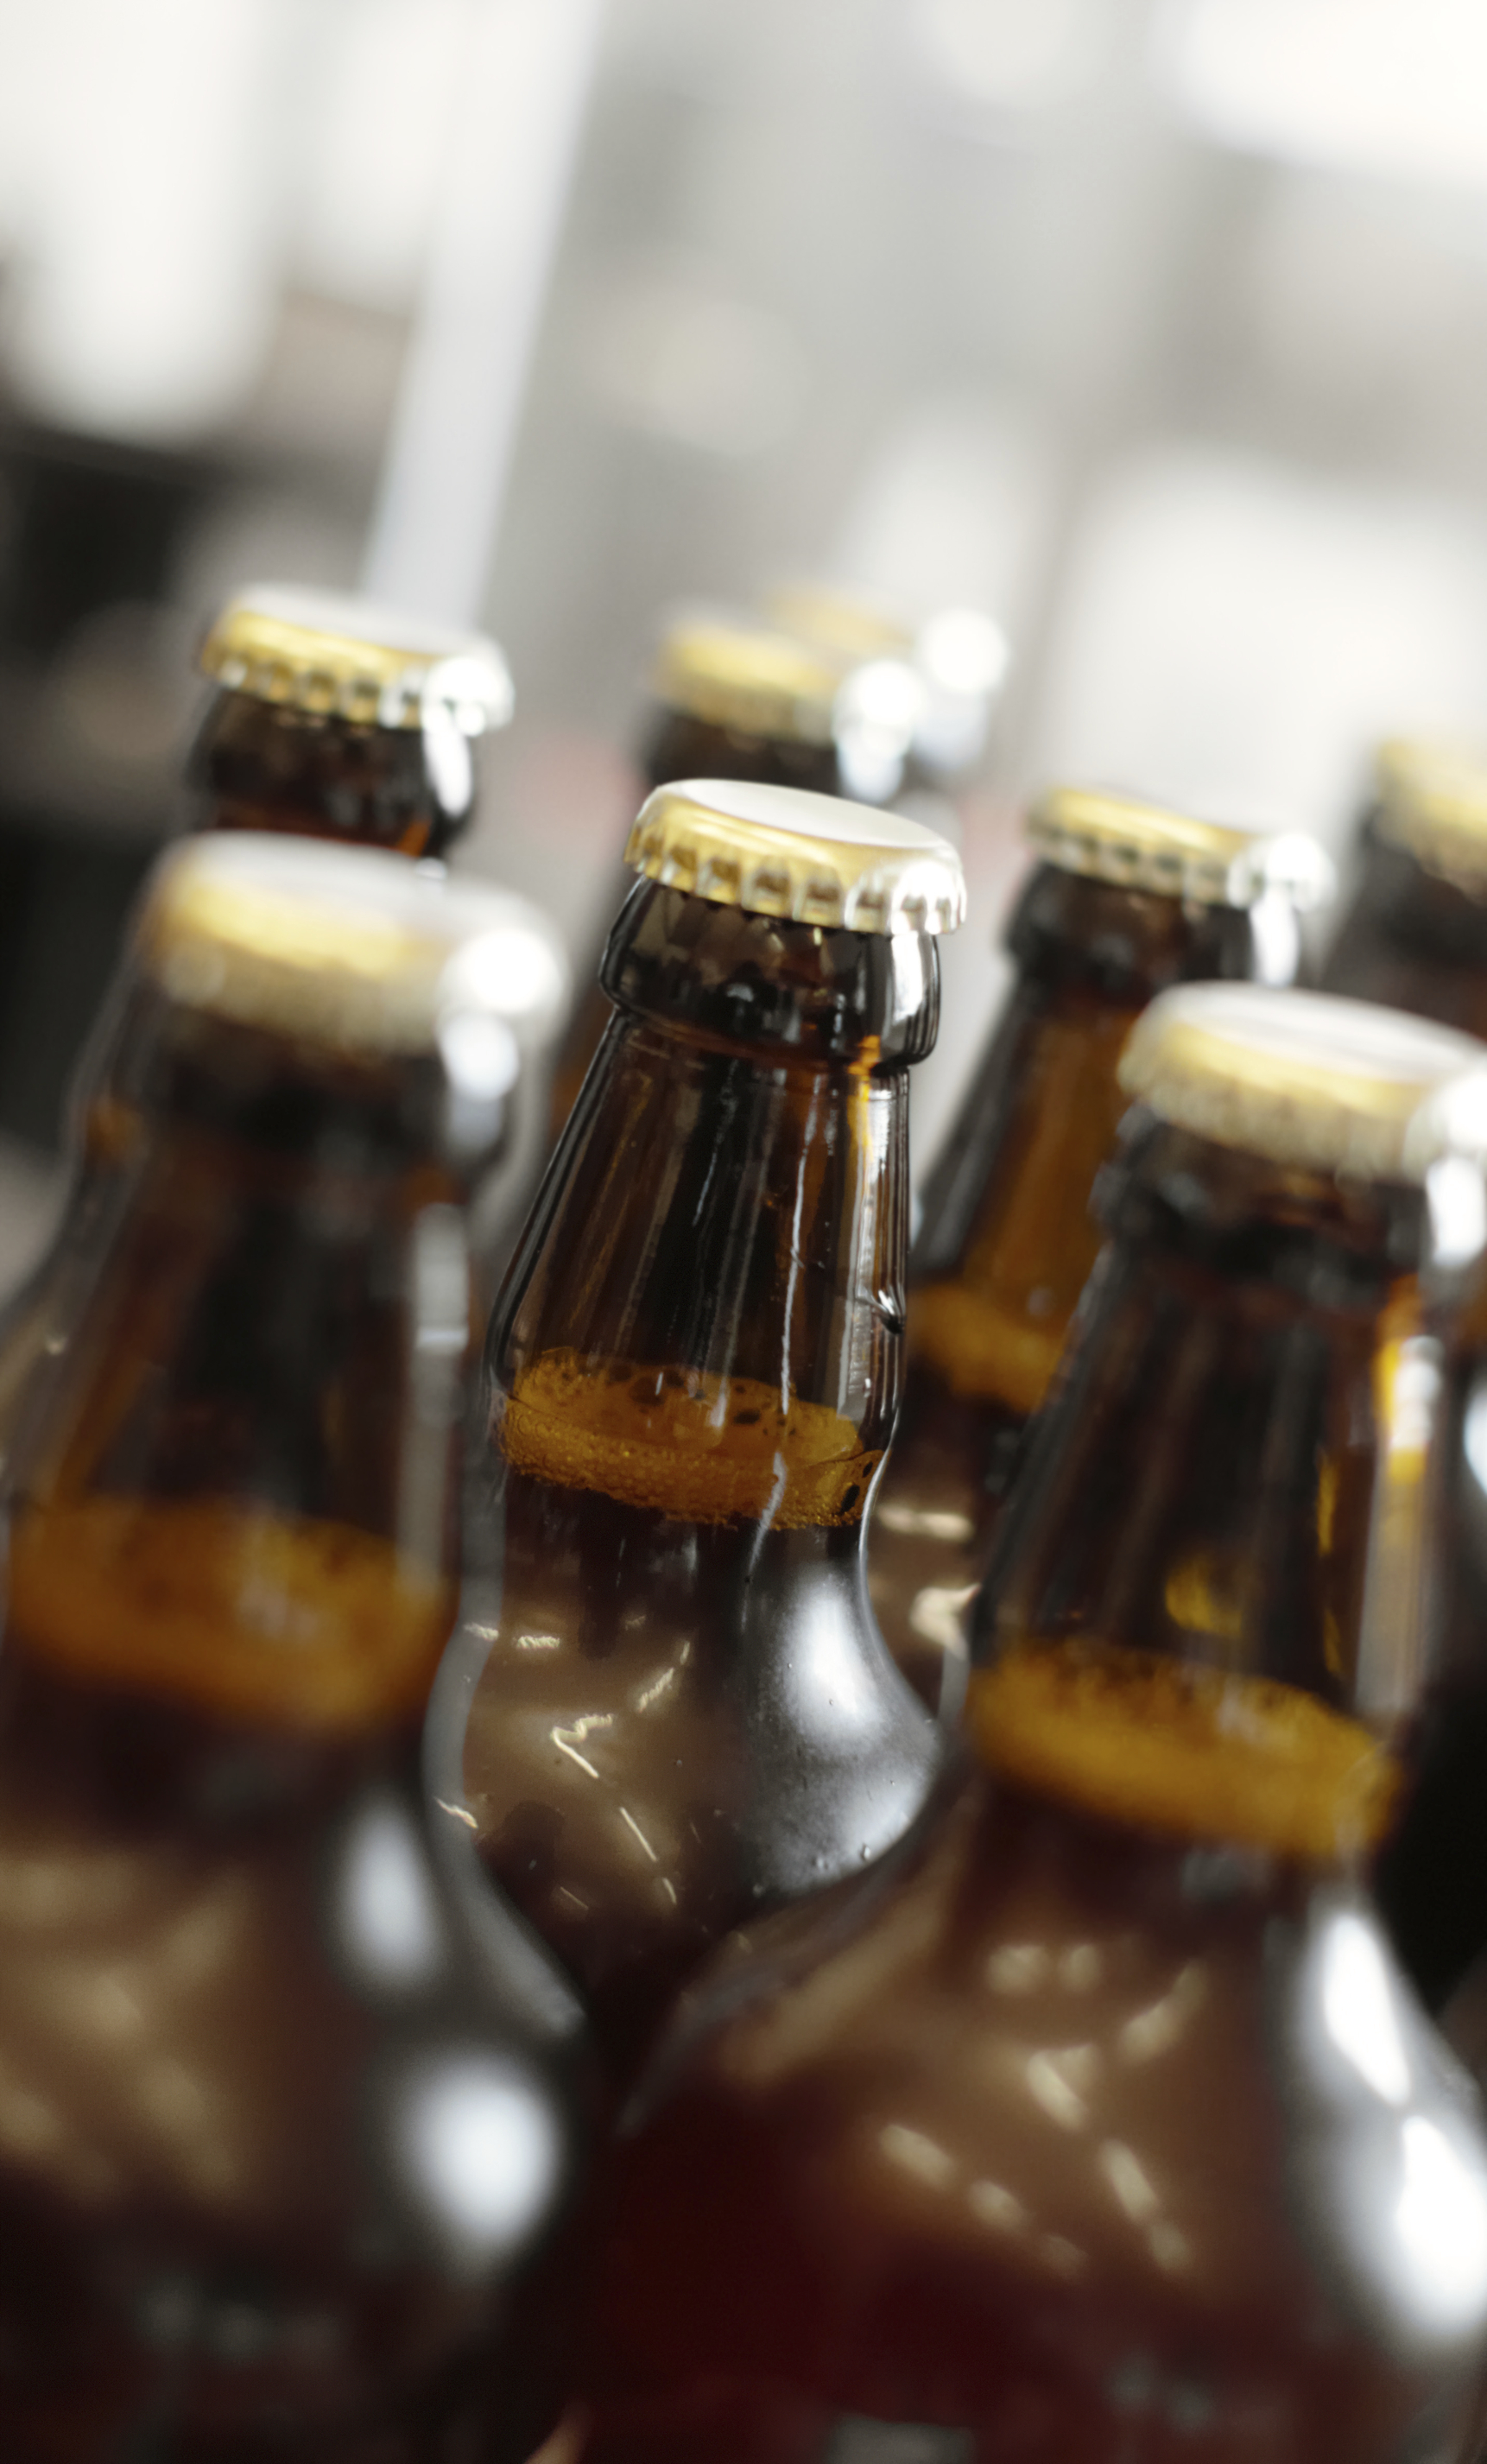 Closeup shot of a collection of bottled beerhttp://195.154.178.81/DATA/i_collage/pi/shoots/781468.jpg